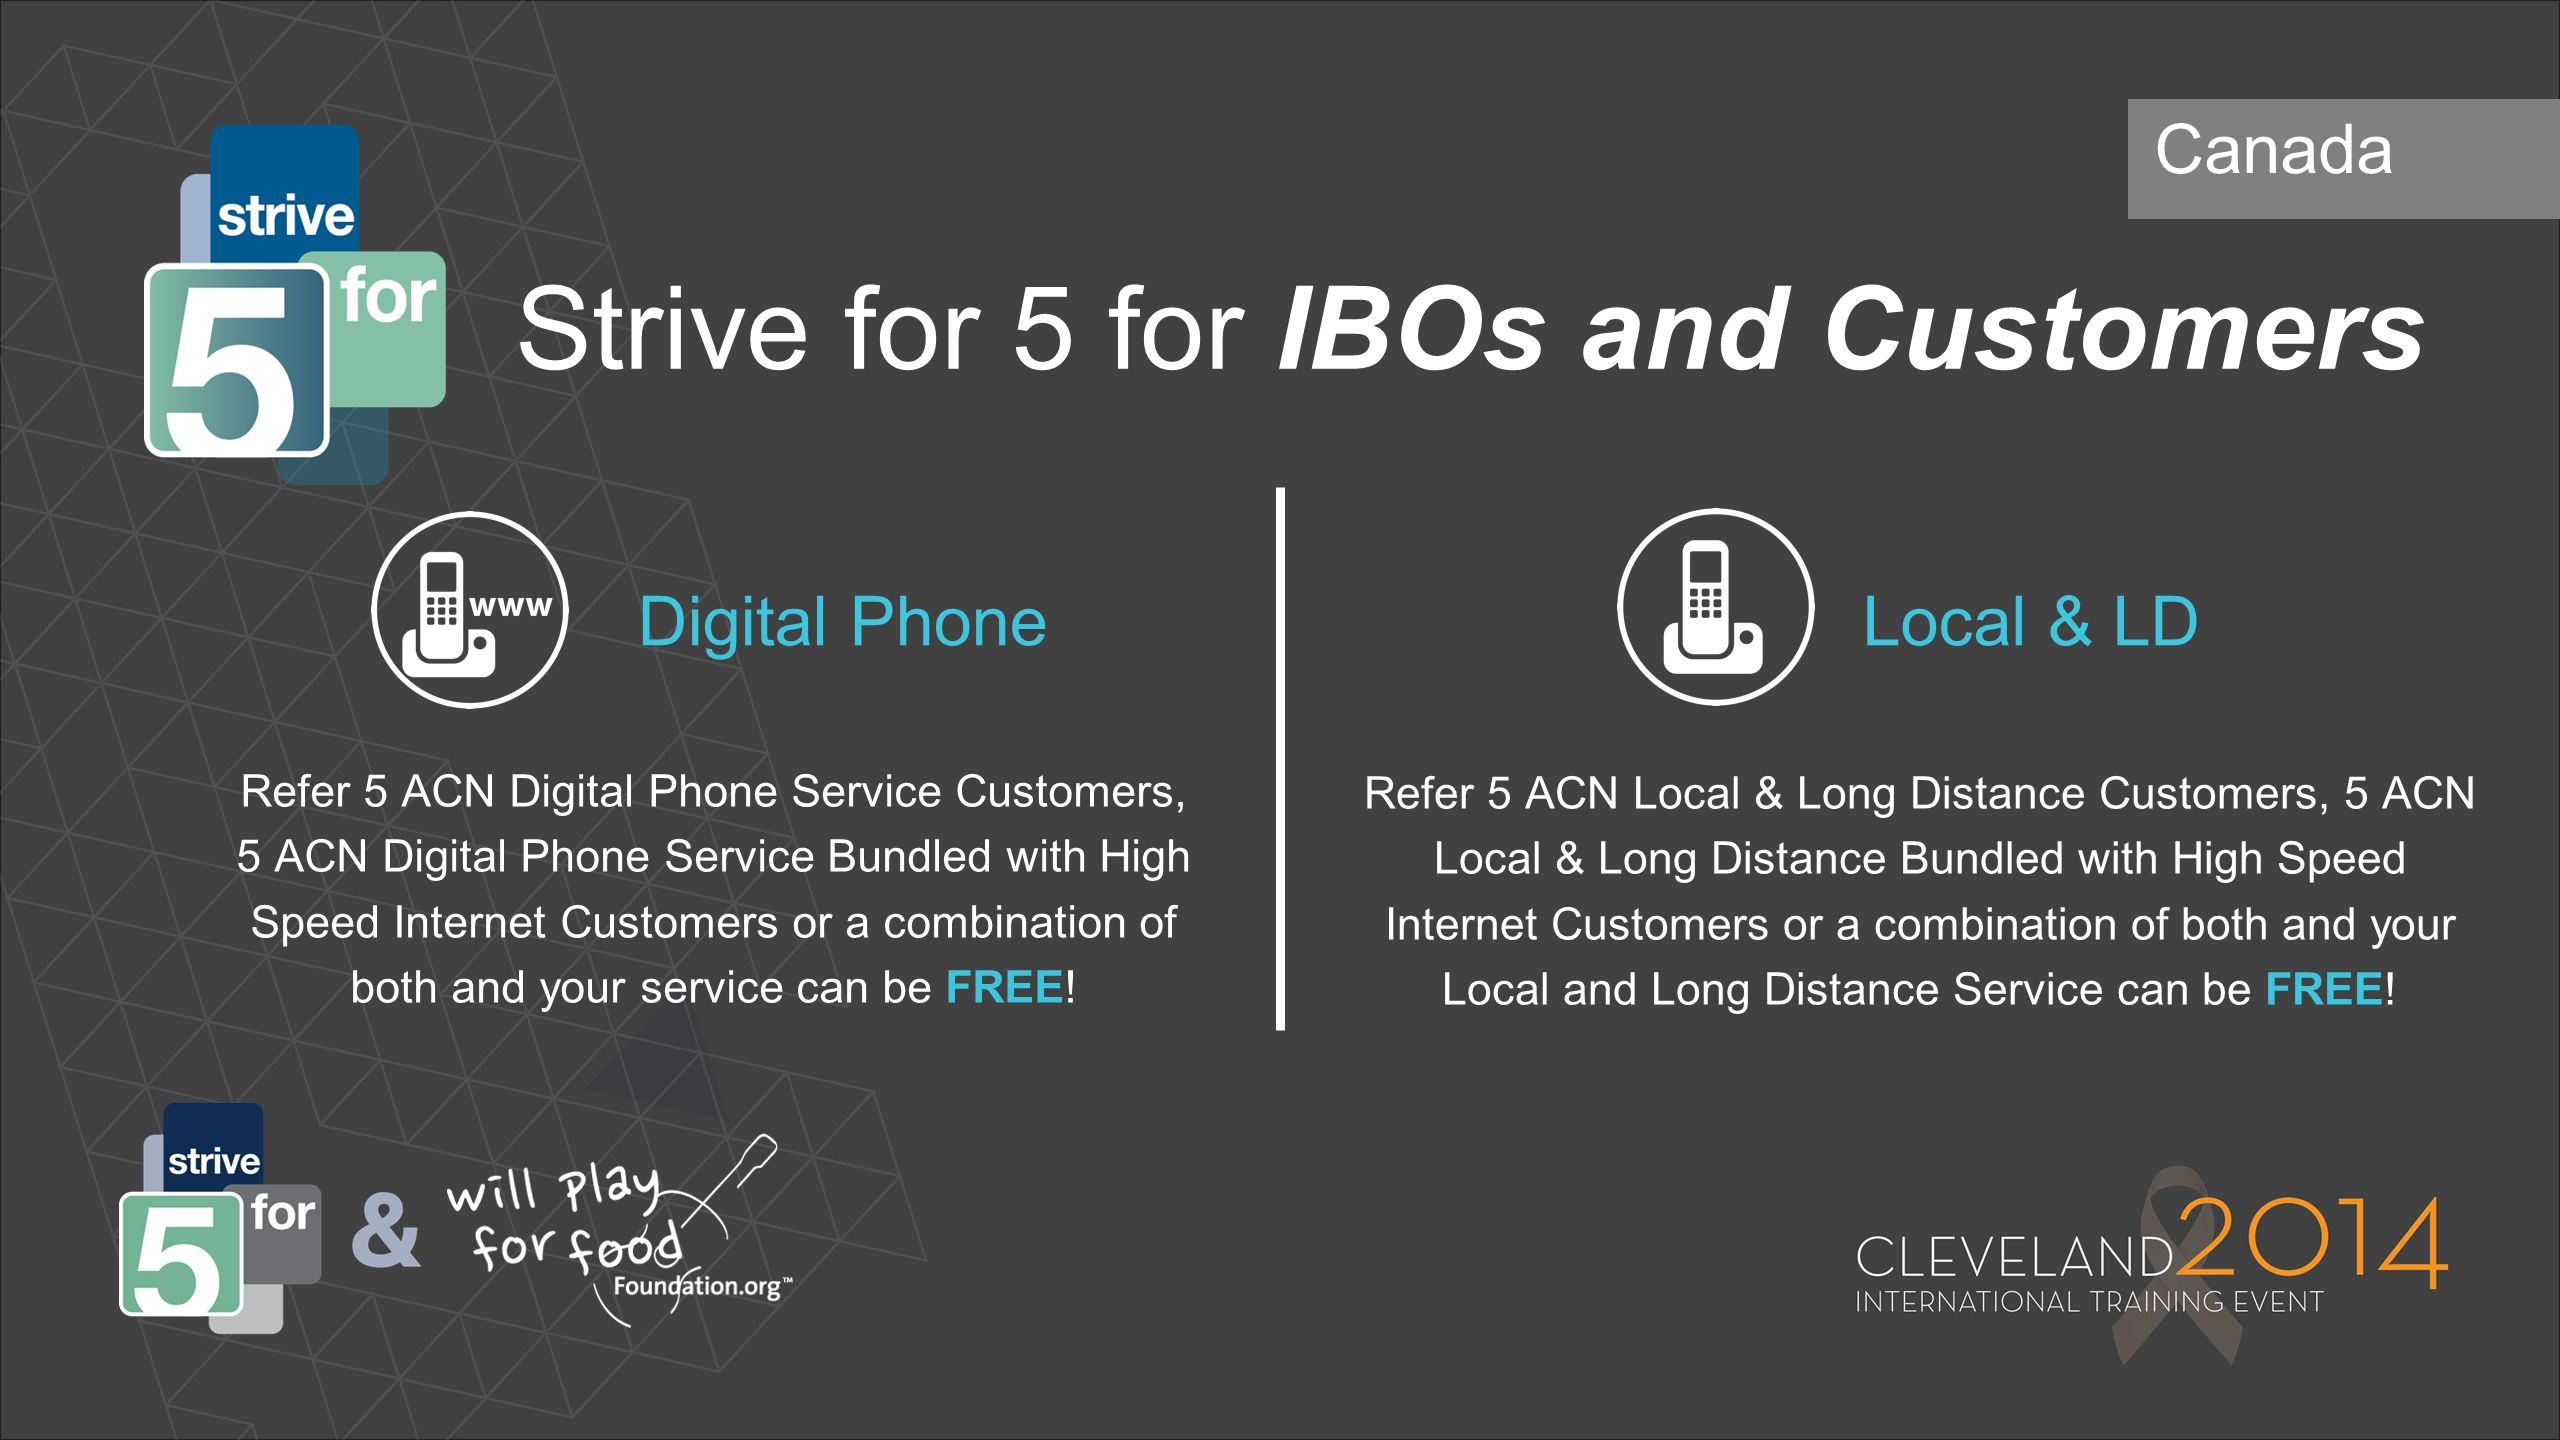 Strive for 5 for IBOs and Customers